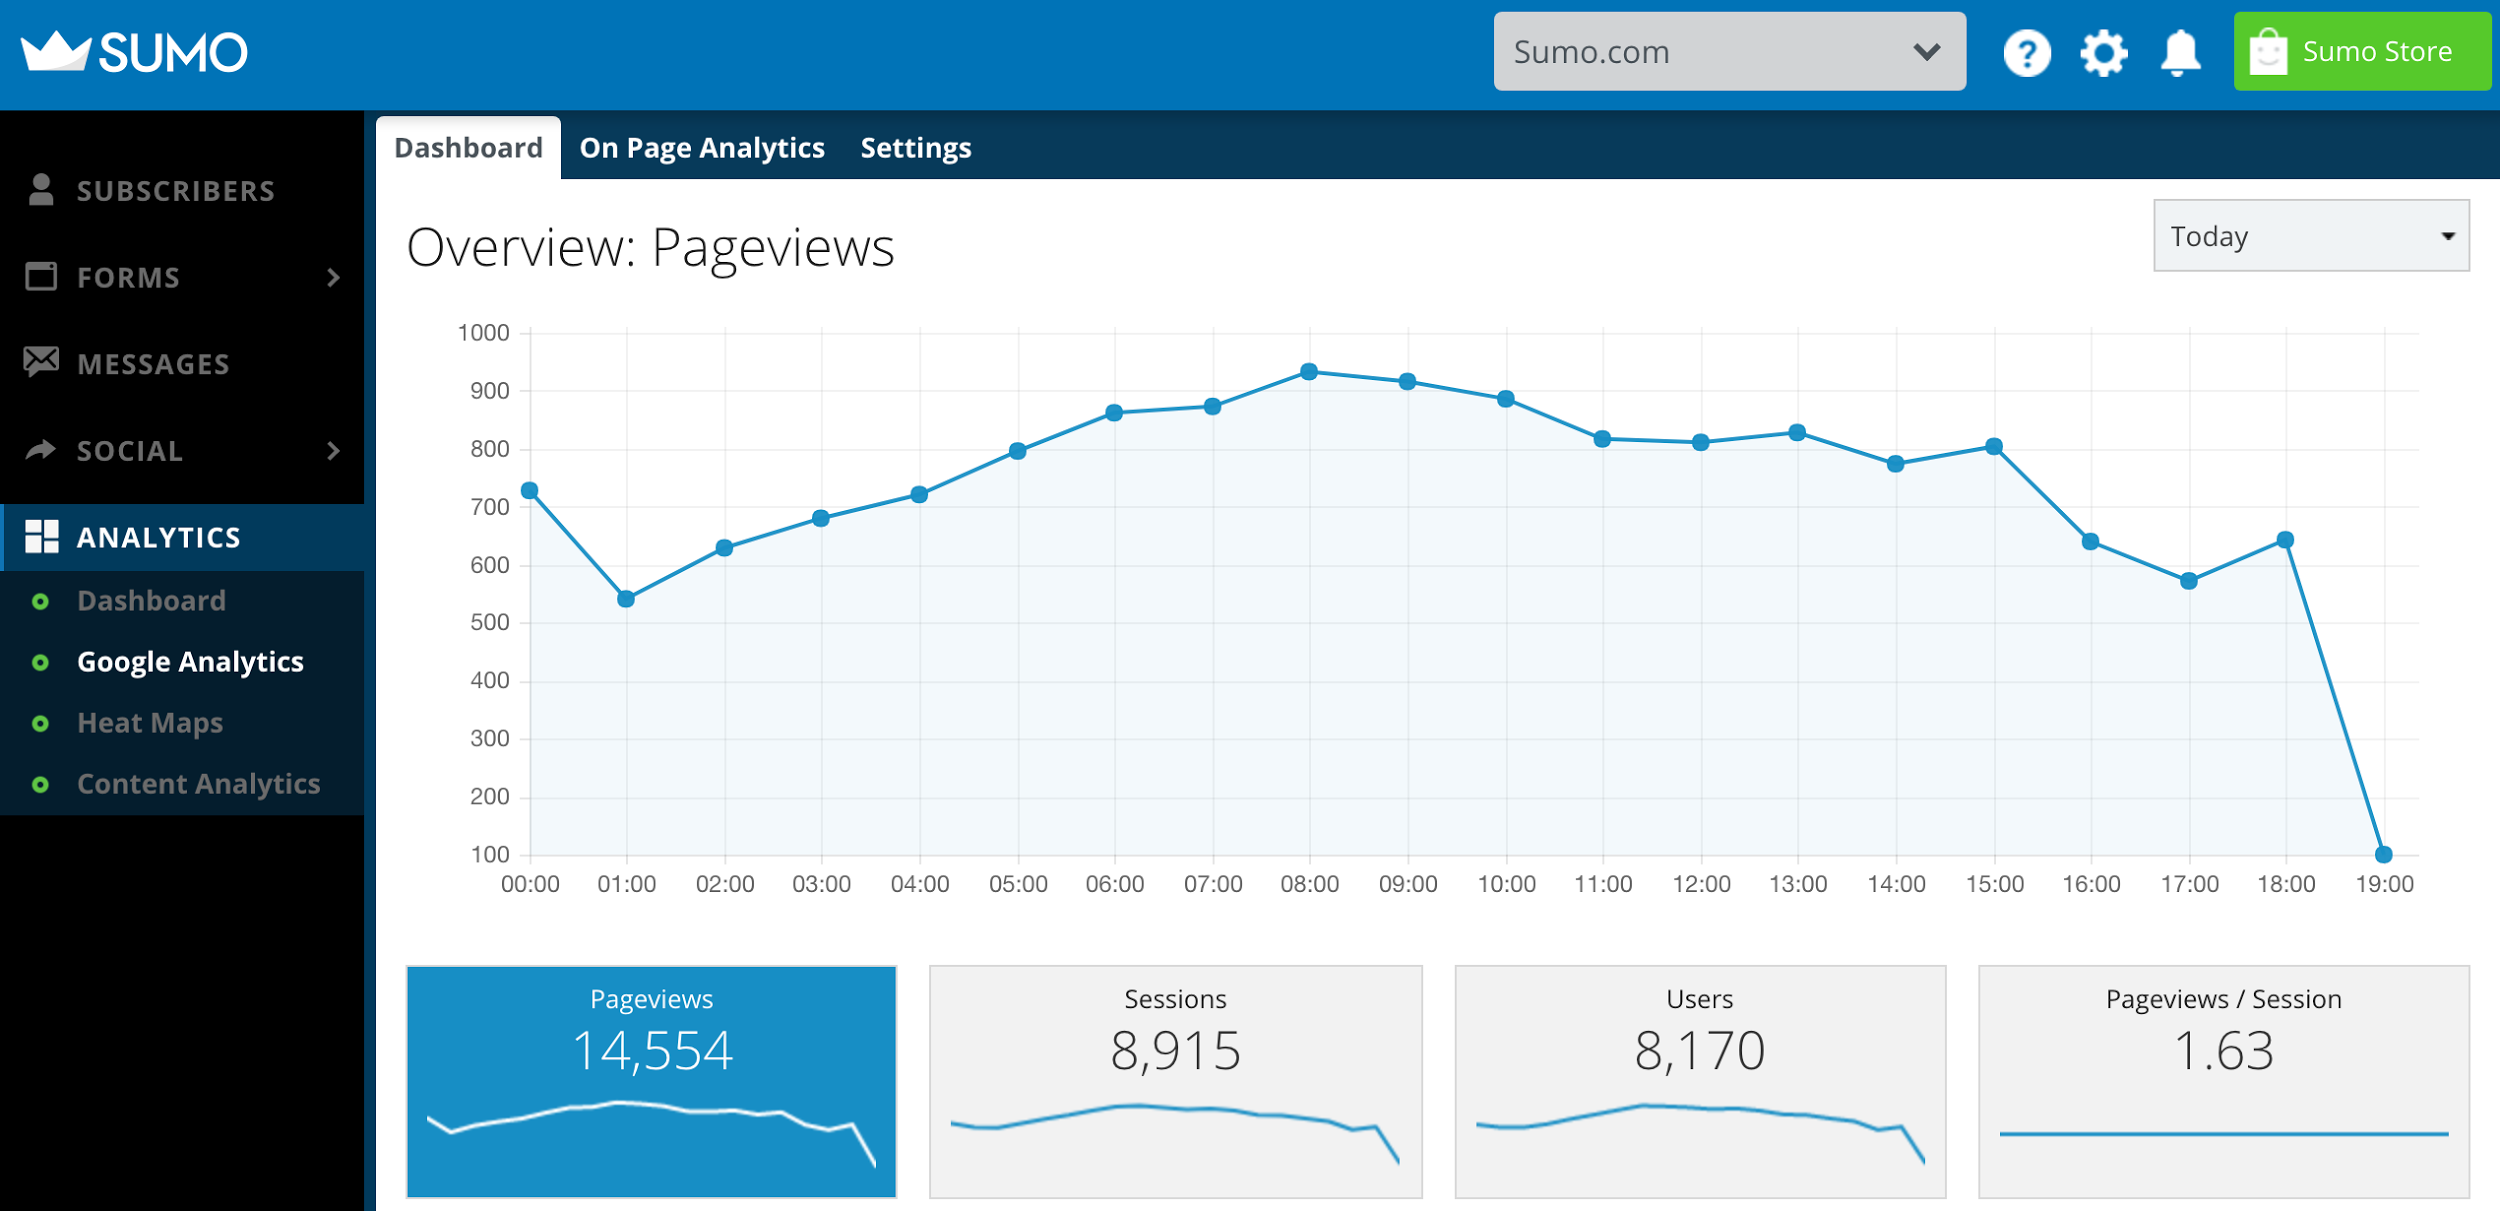 Screenshot of the Sumo dashboard along with a graph that shows pageviews